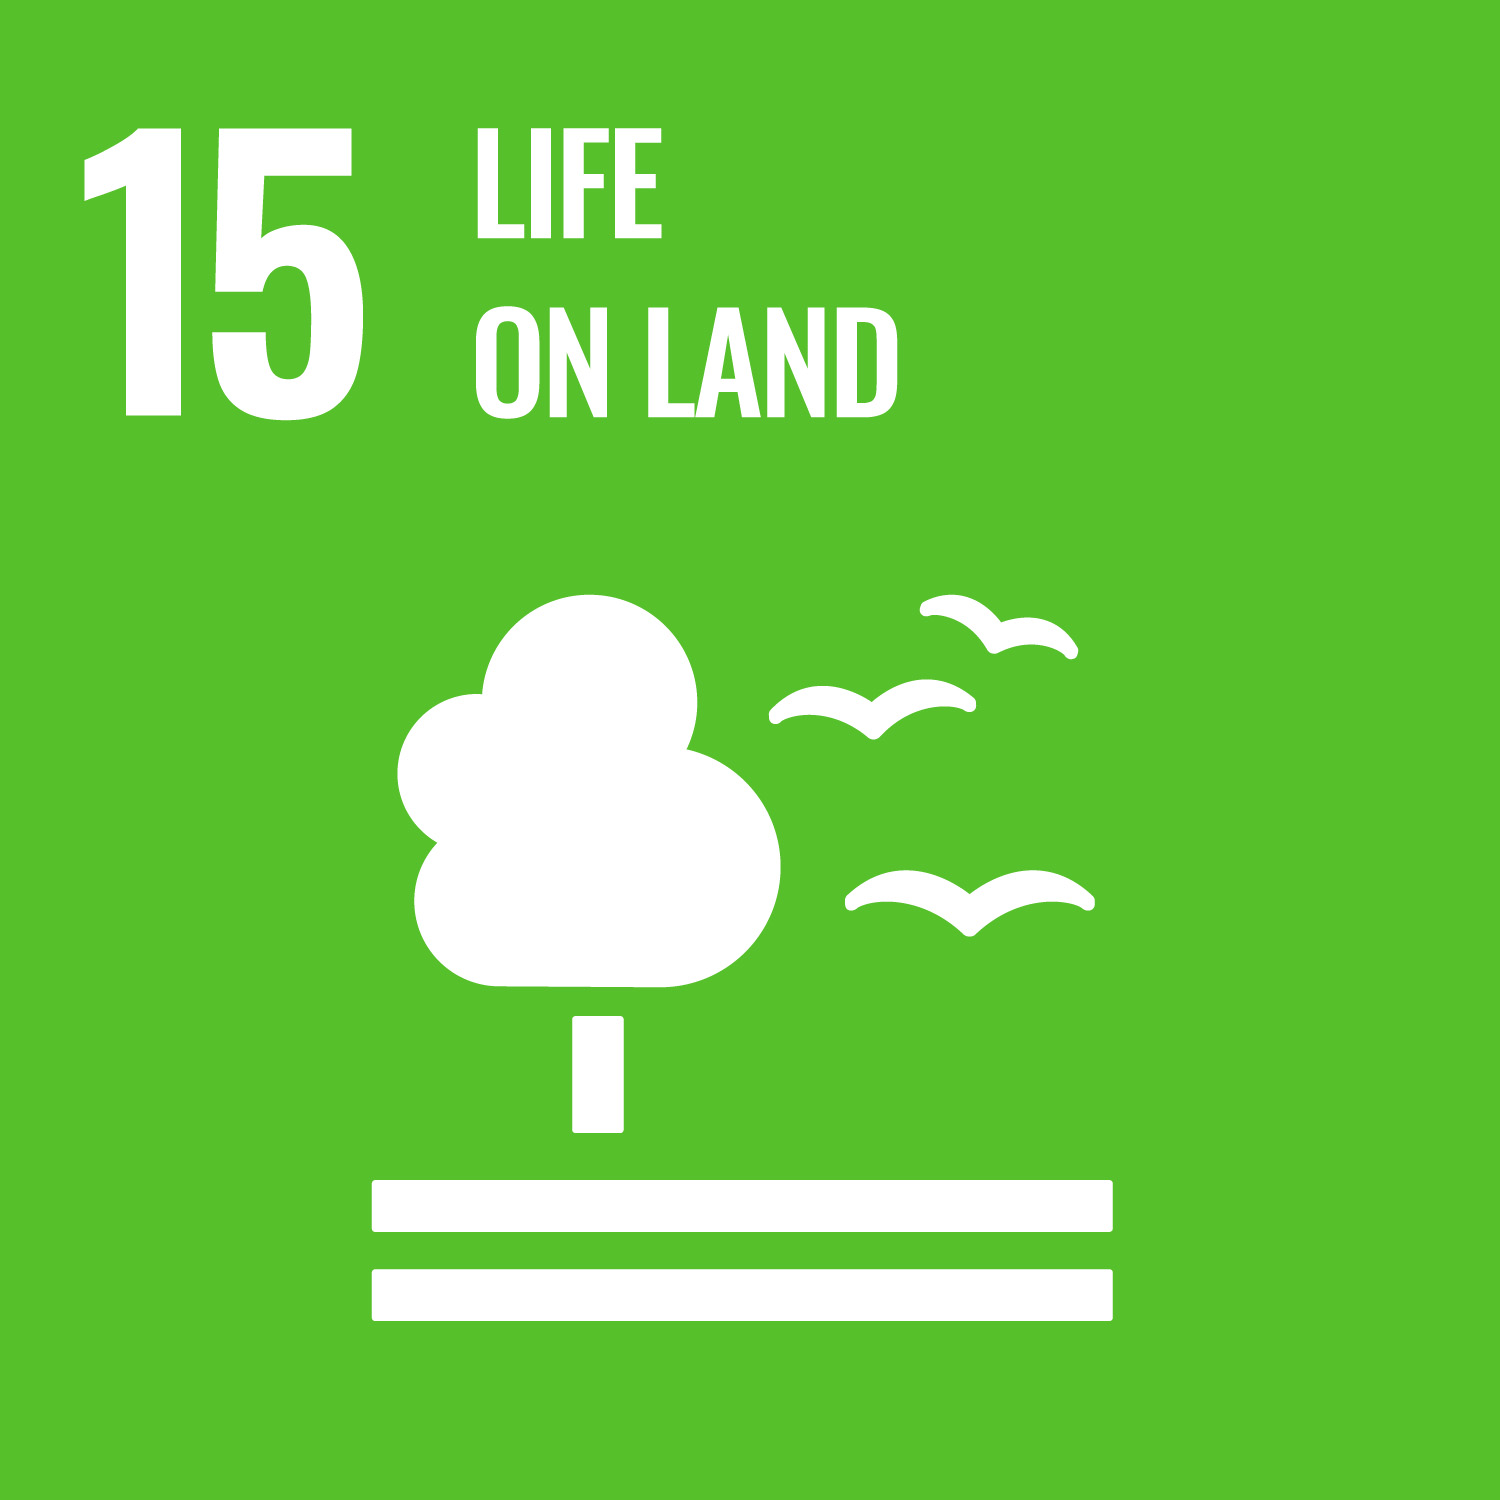 UN logo for life on land